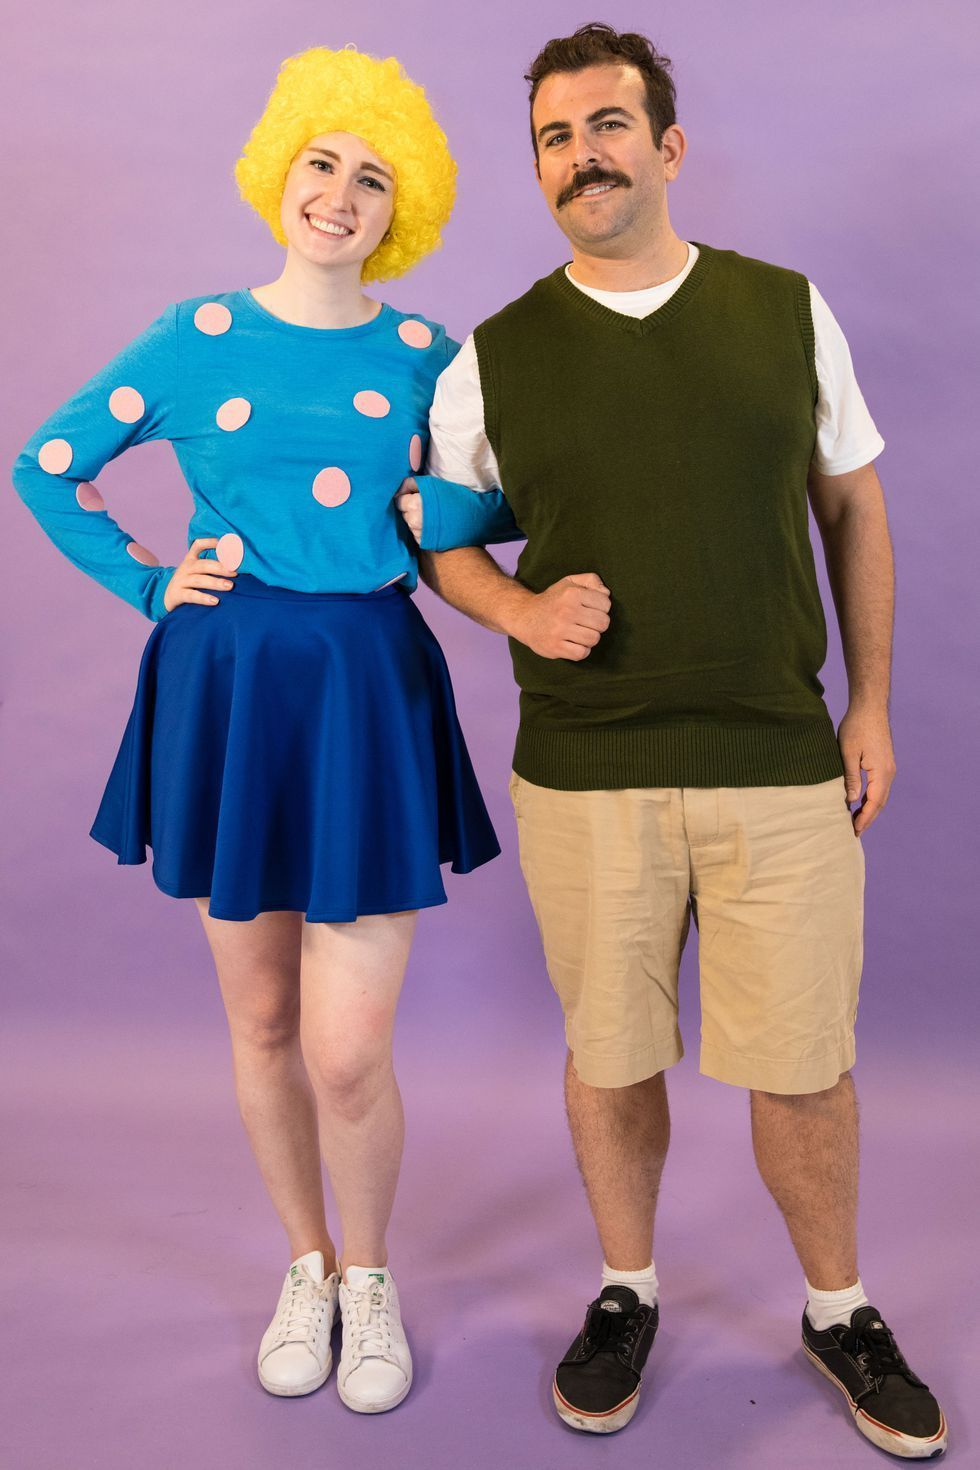 Best 90s Halloween Costumes.90s Costumes For Halloween Outfit Ideas Inspired By The 1990s